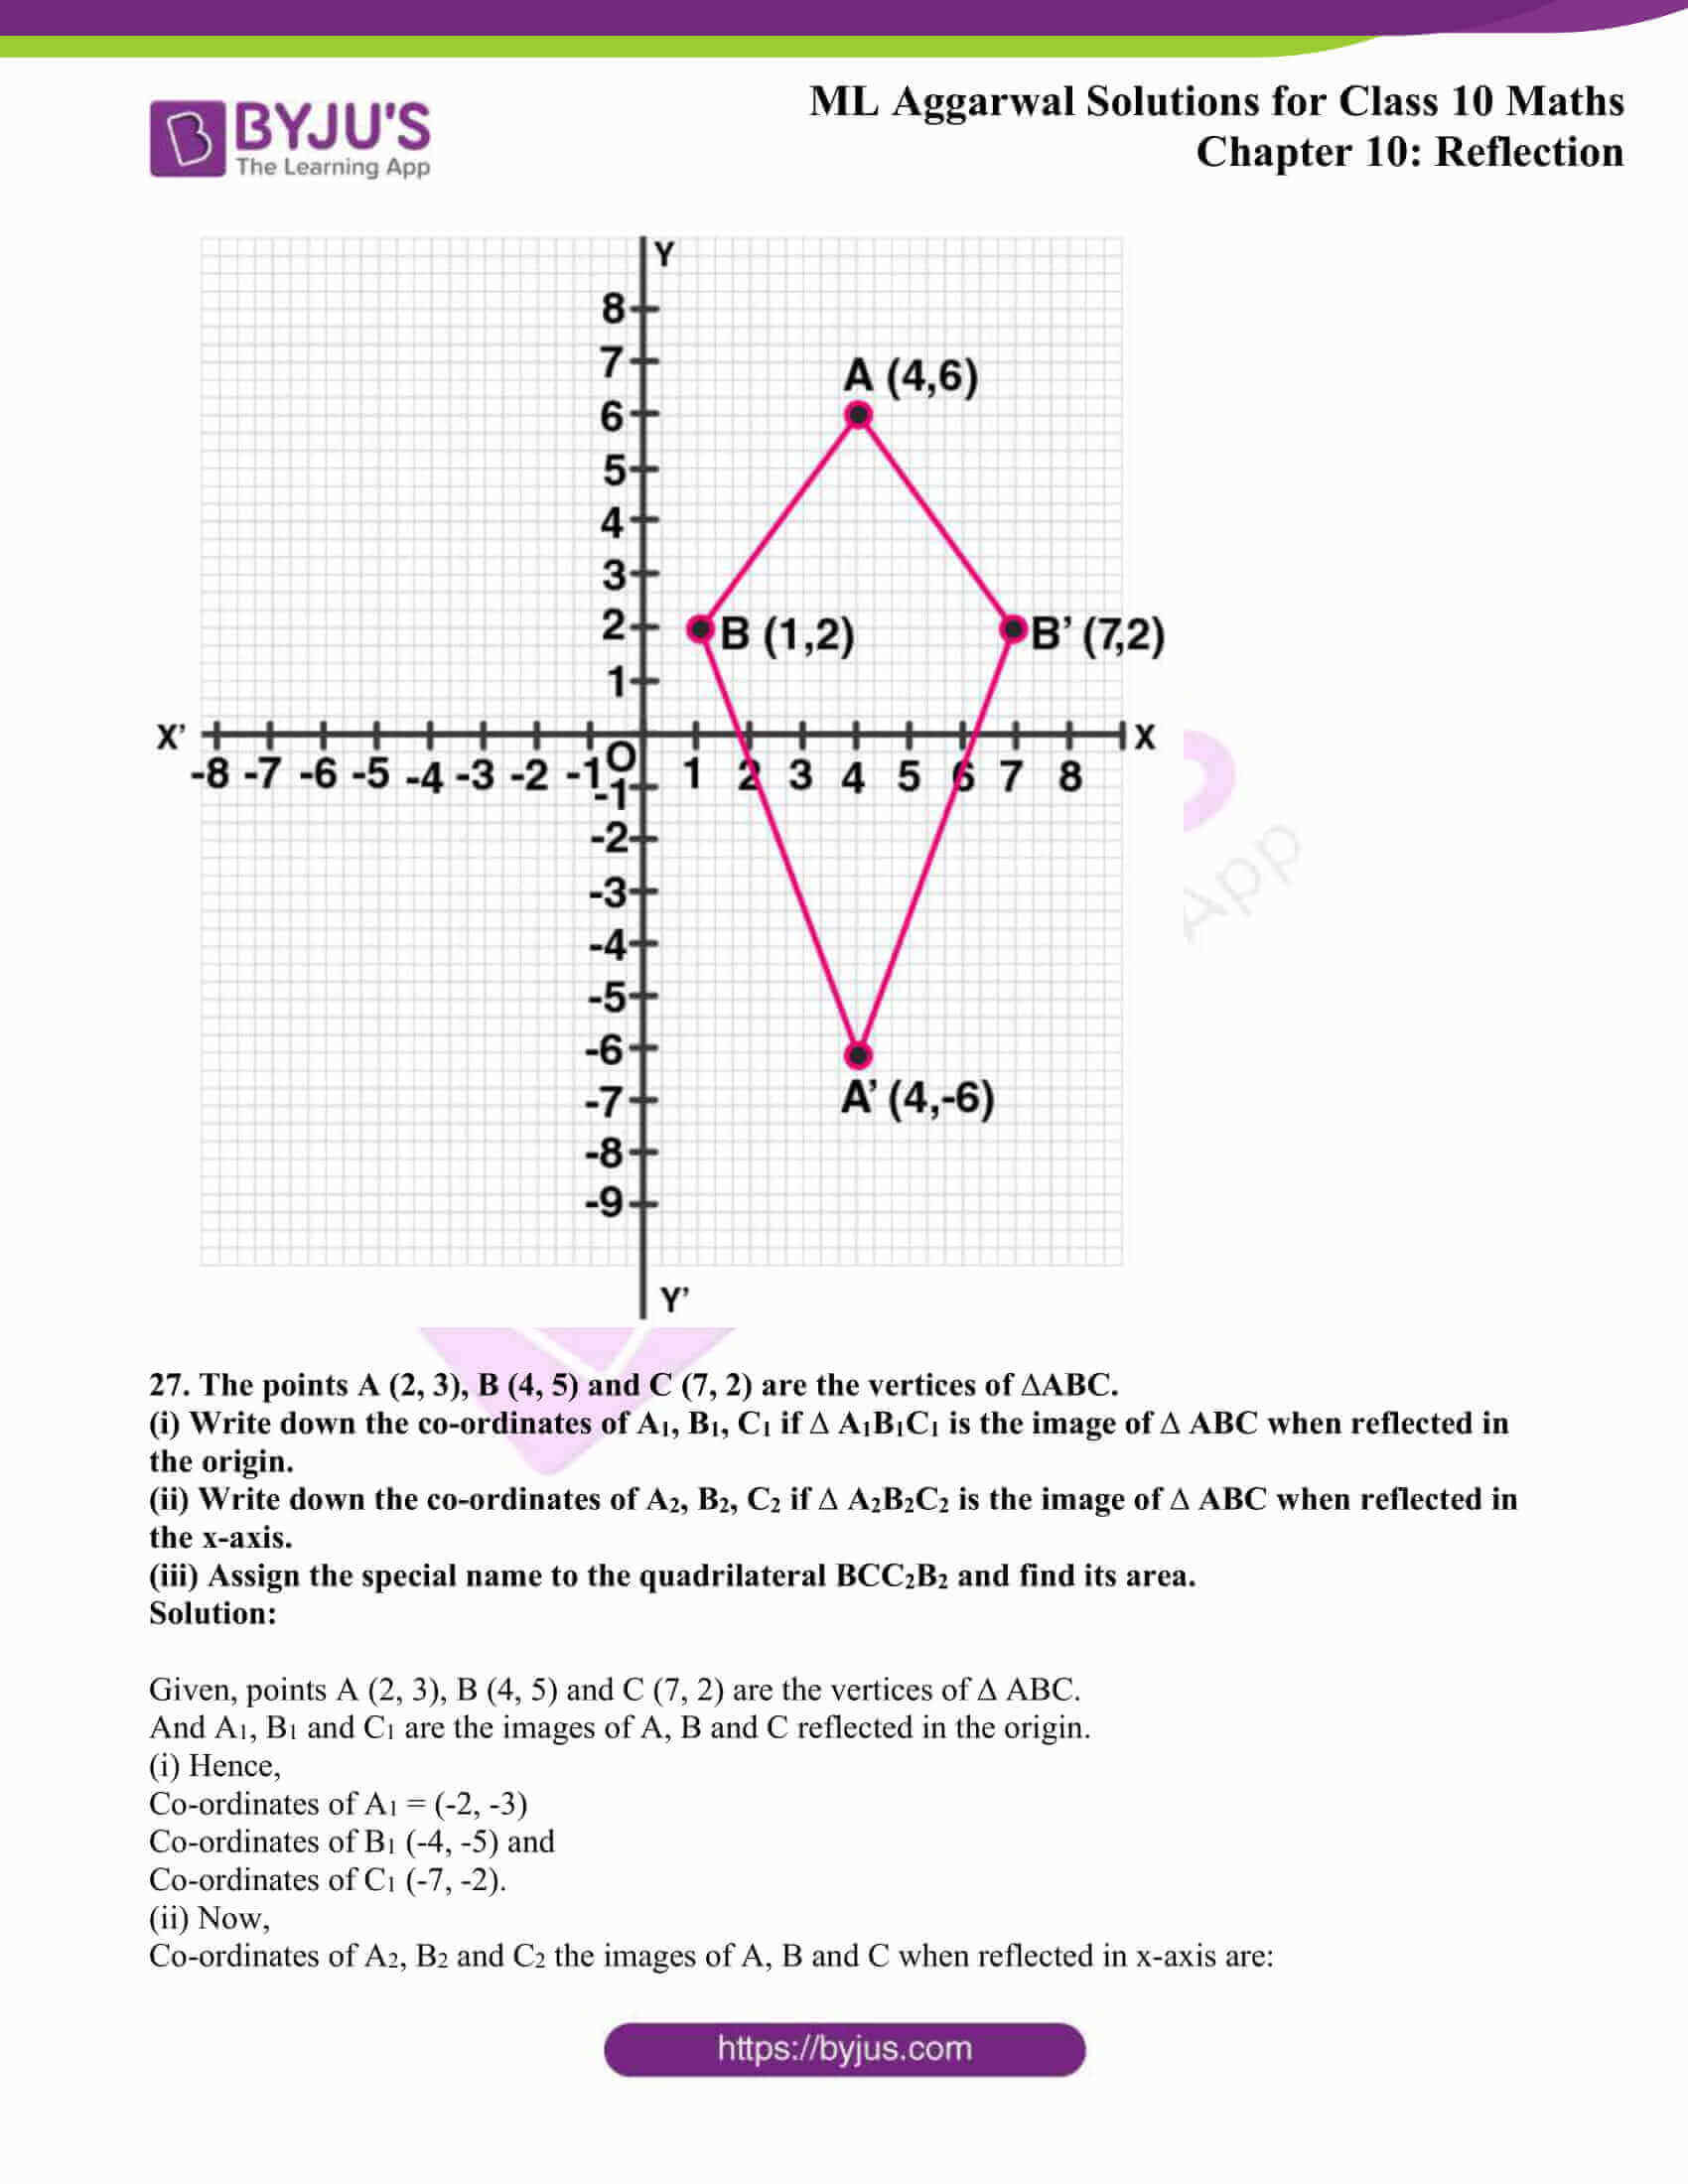 ml aggarwal solutions class 10 maths chapter 10 19